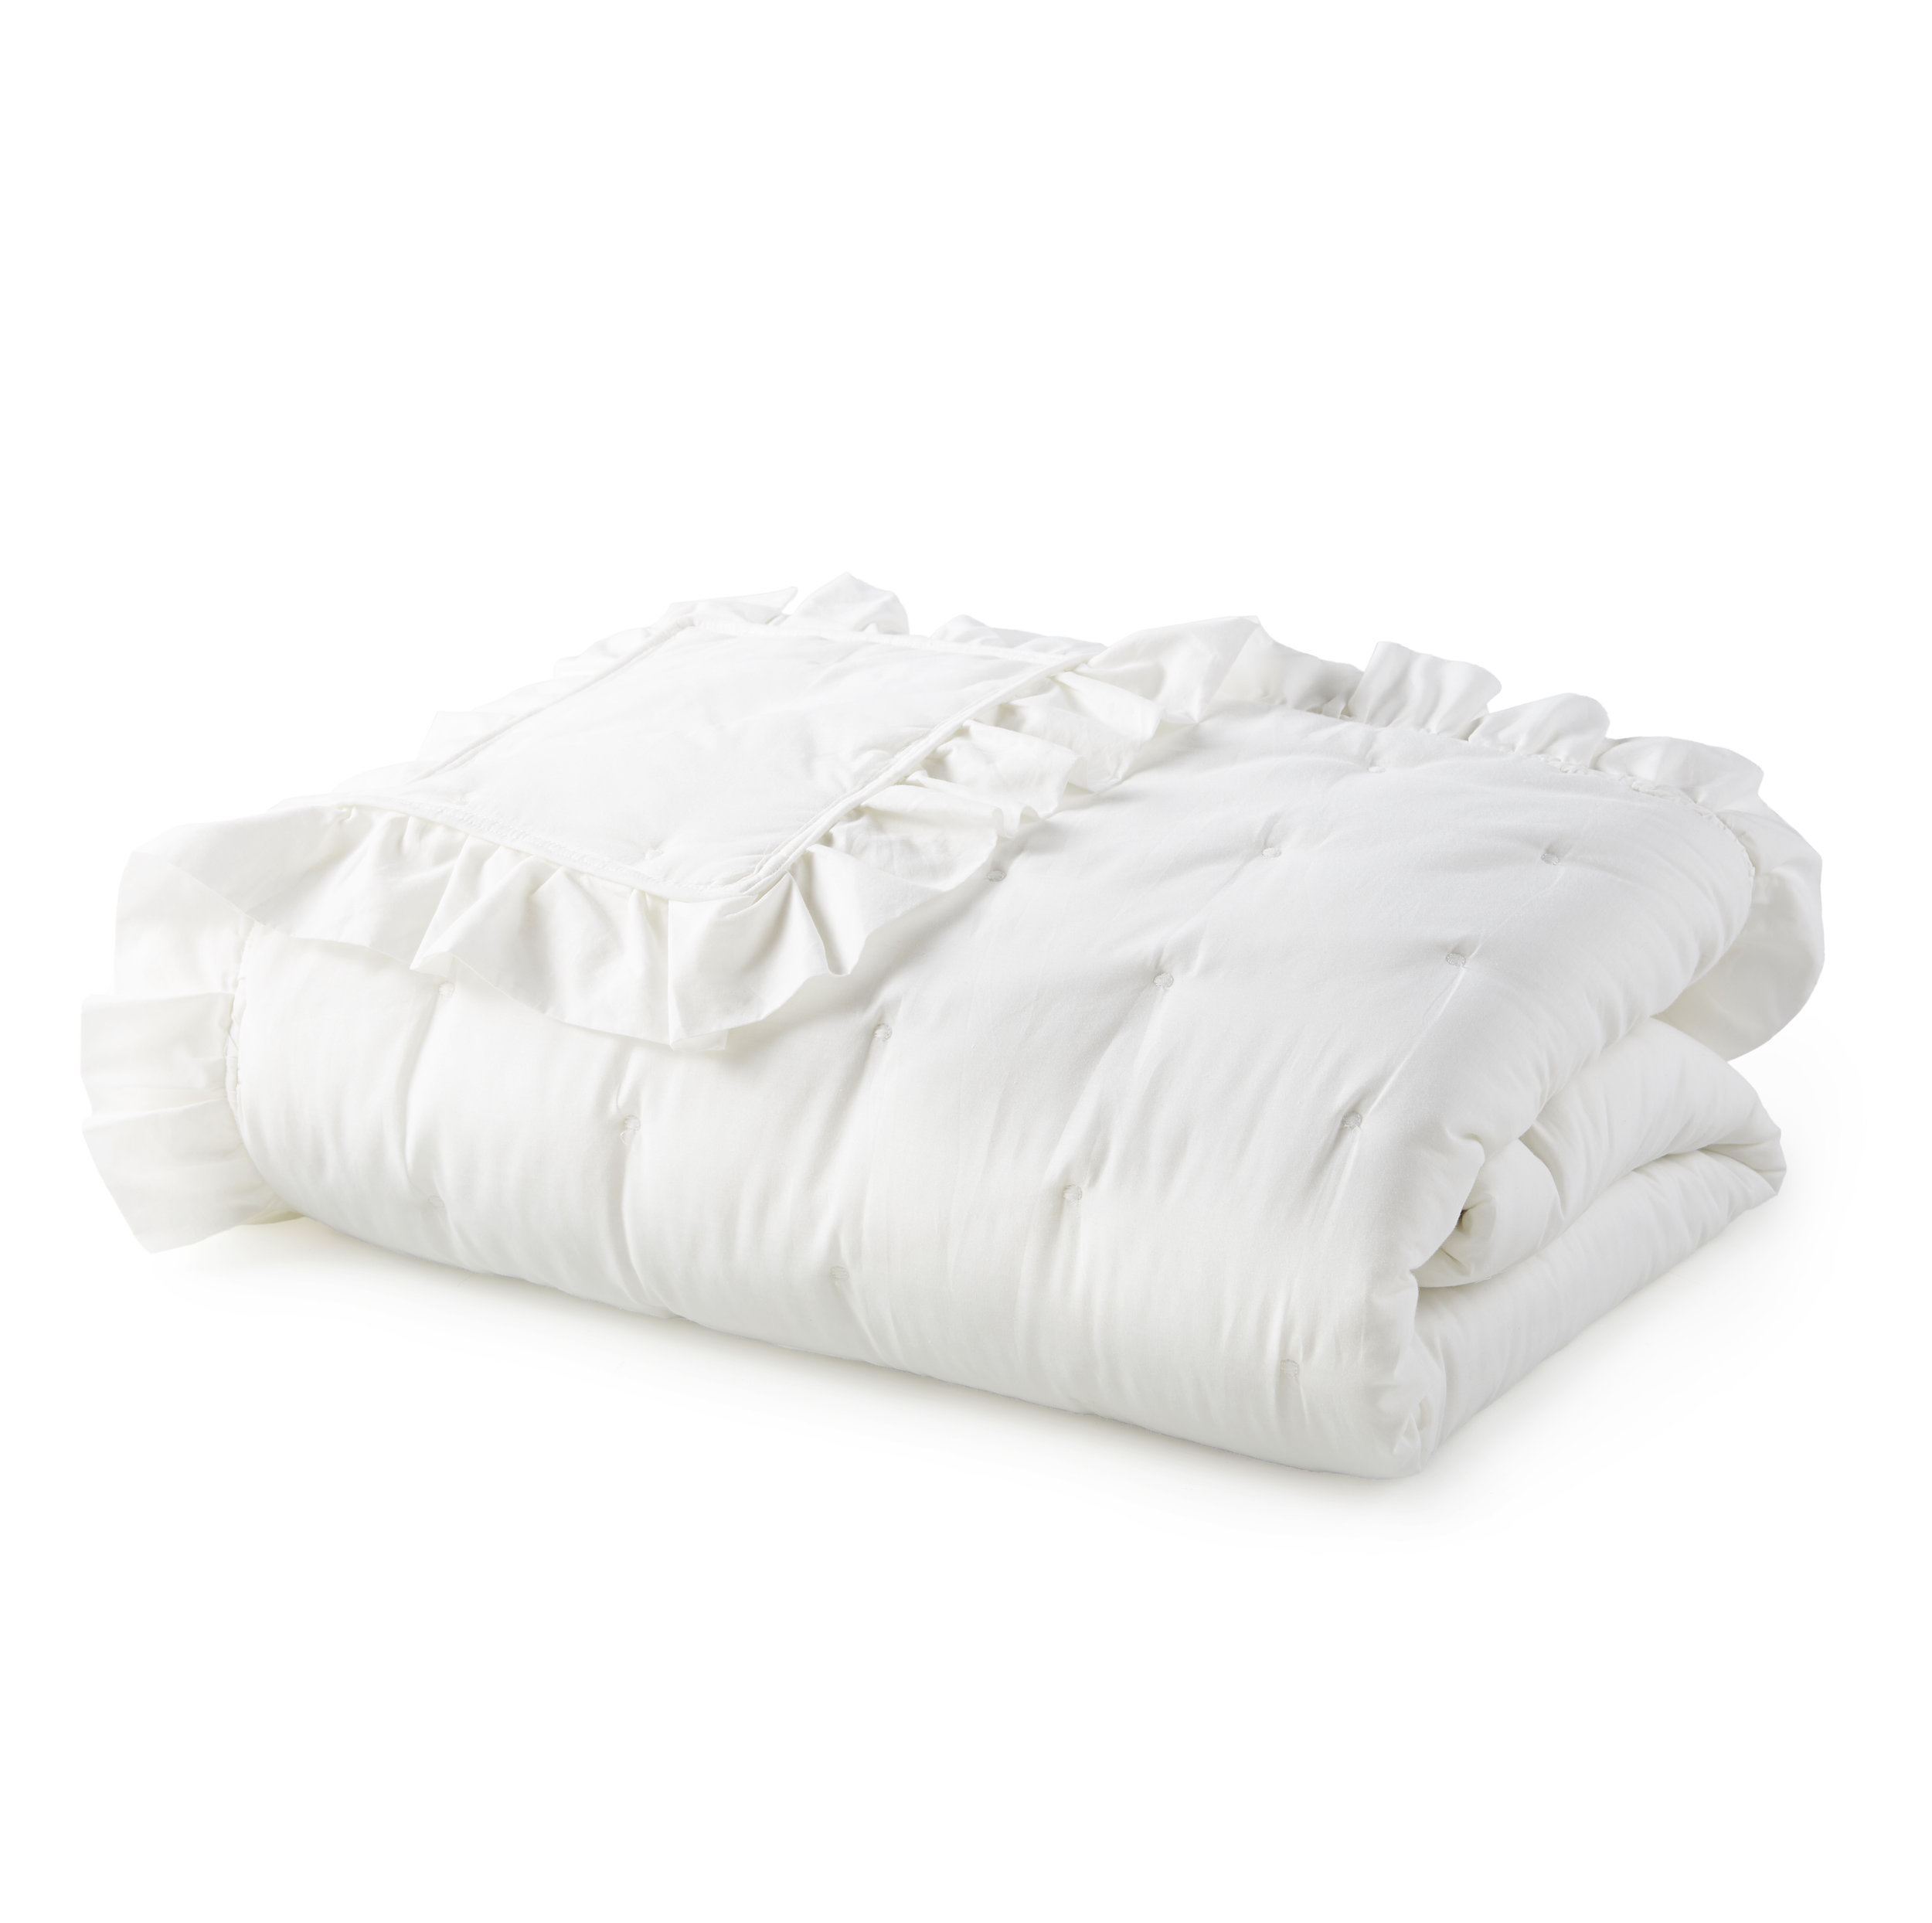 Cotton Voile White Ruffle Farmhouse Bed Quilt Sham by heirloomed collection